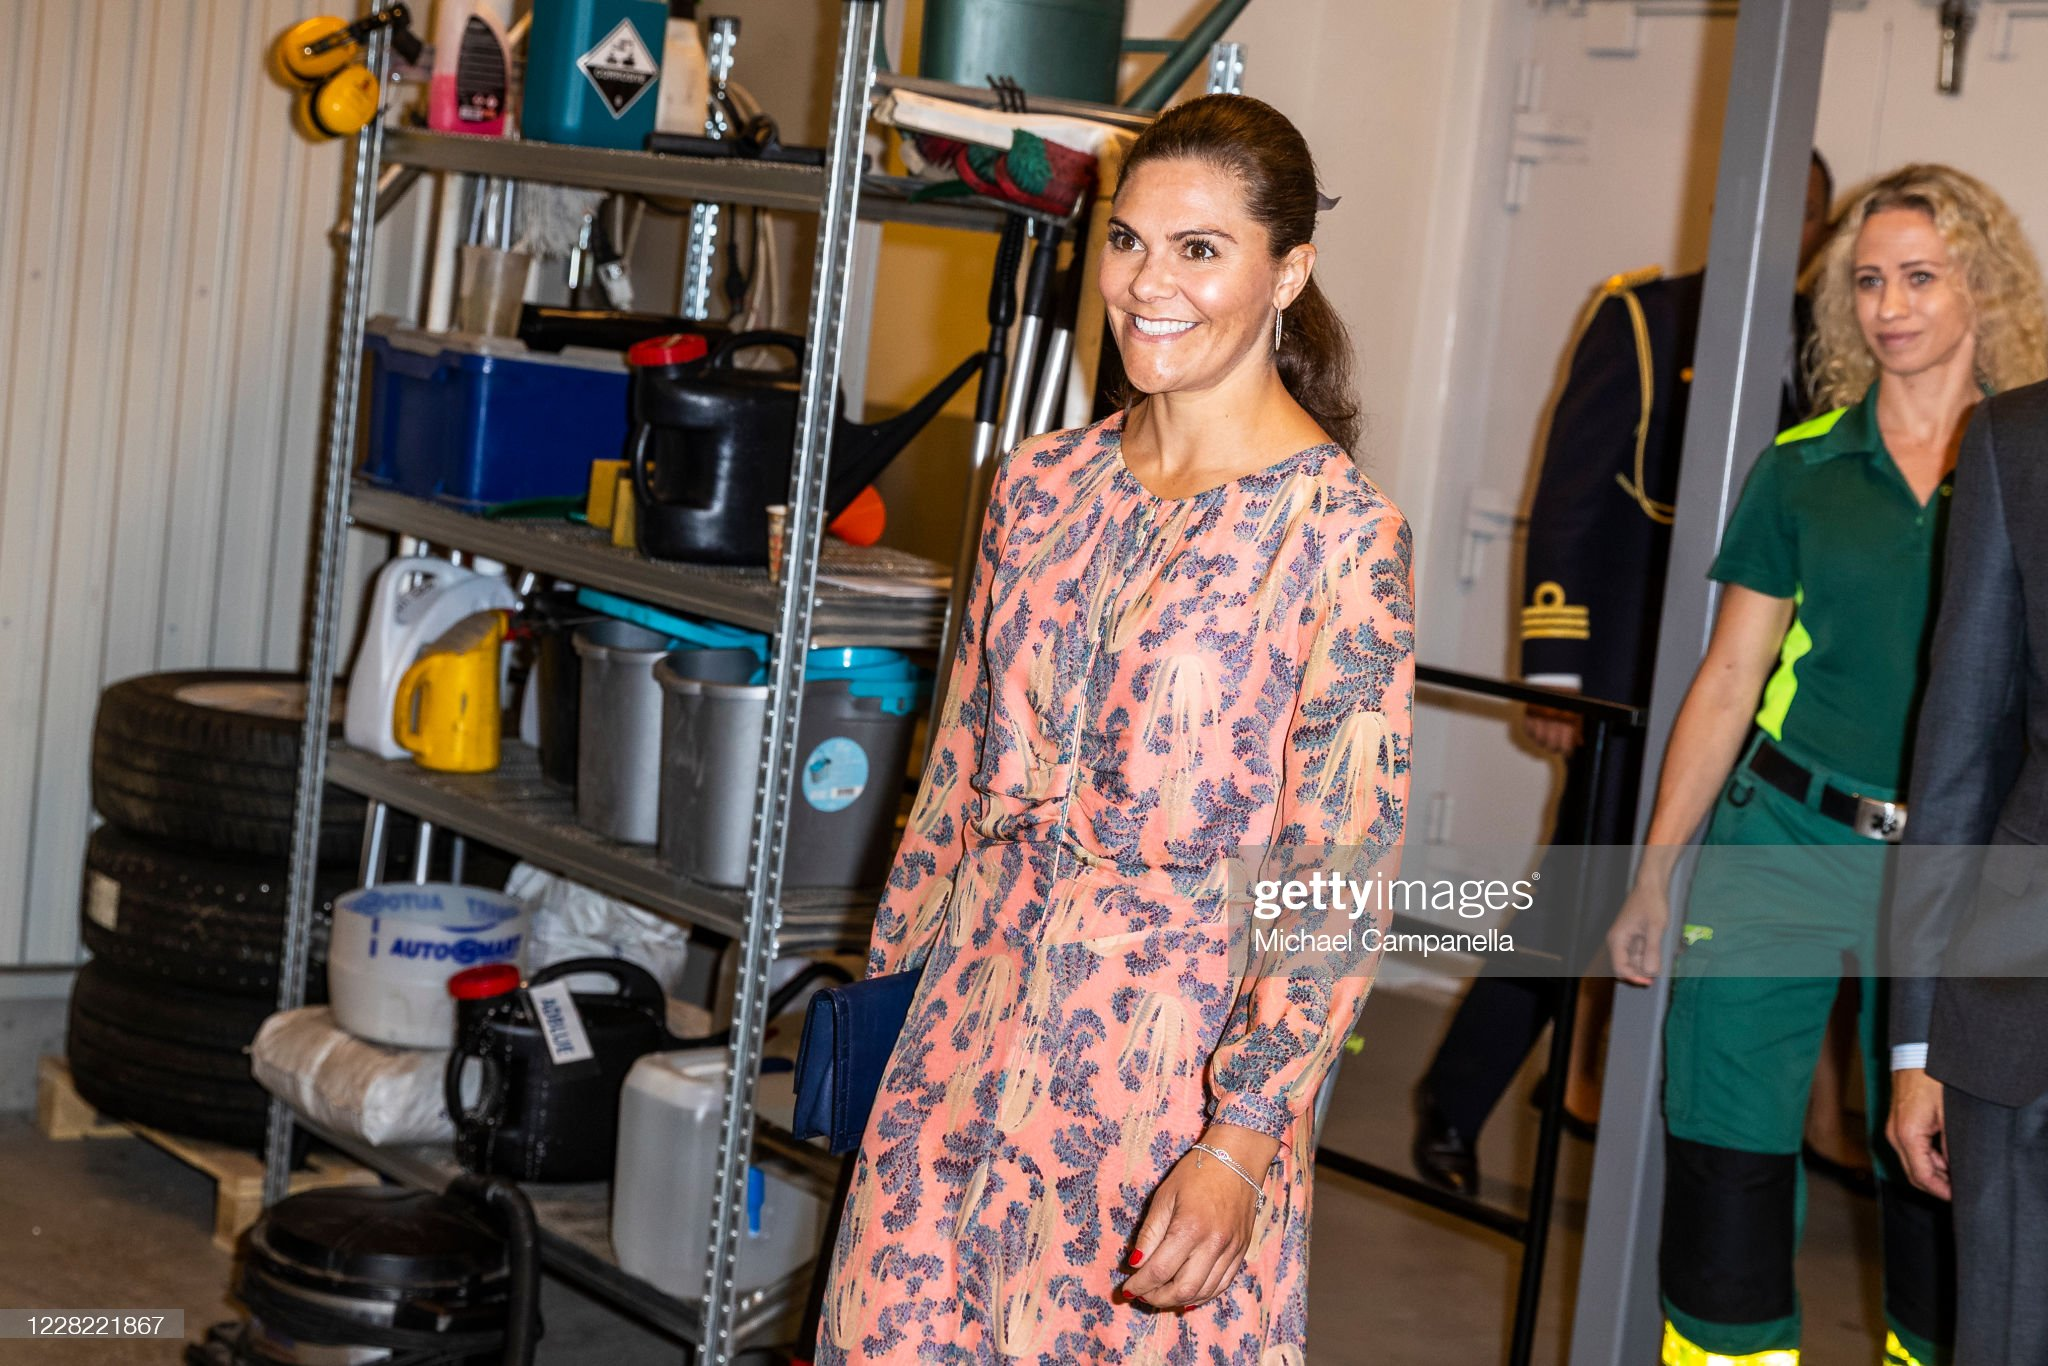 crown-princess-victoria-of-sweden-visits-an-ambulance-station-in-the-picture-id1228221867